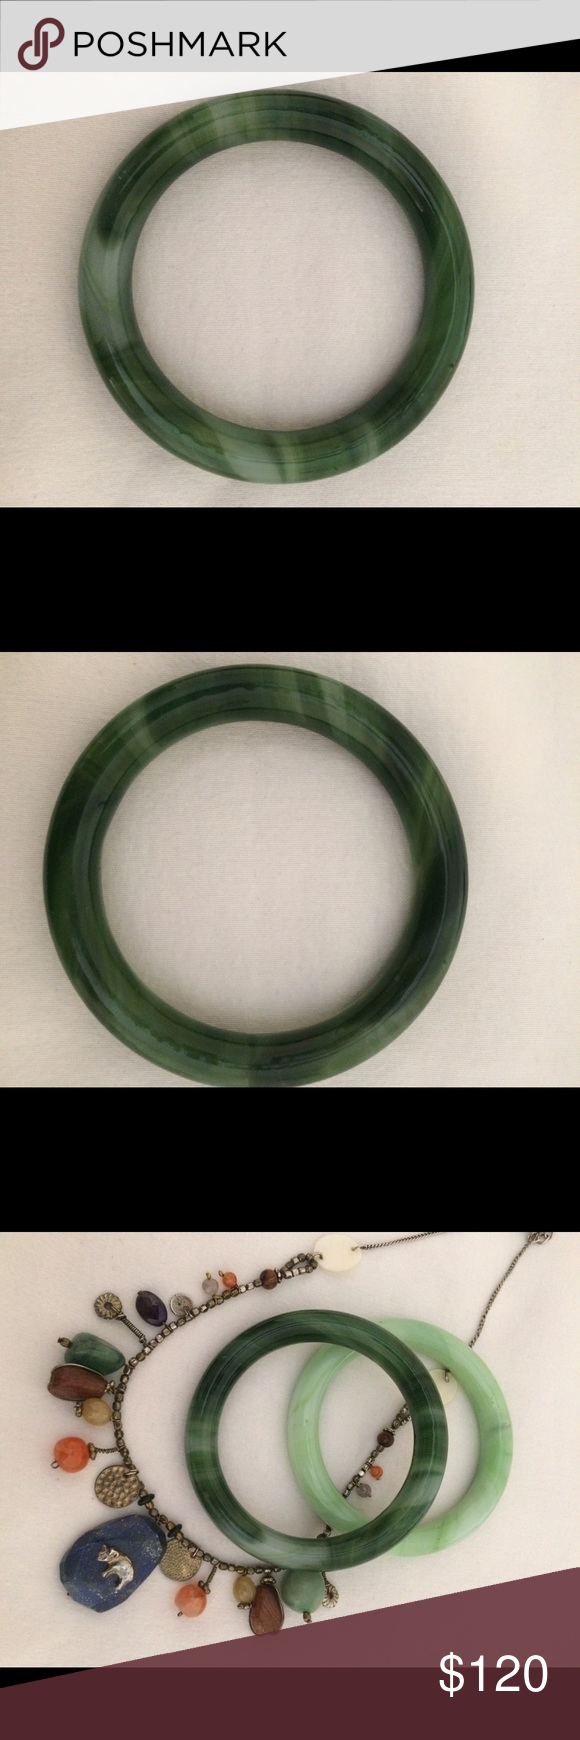 bracelet jba product jade genuine jewelry oriental